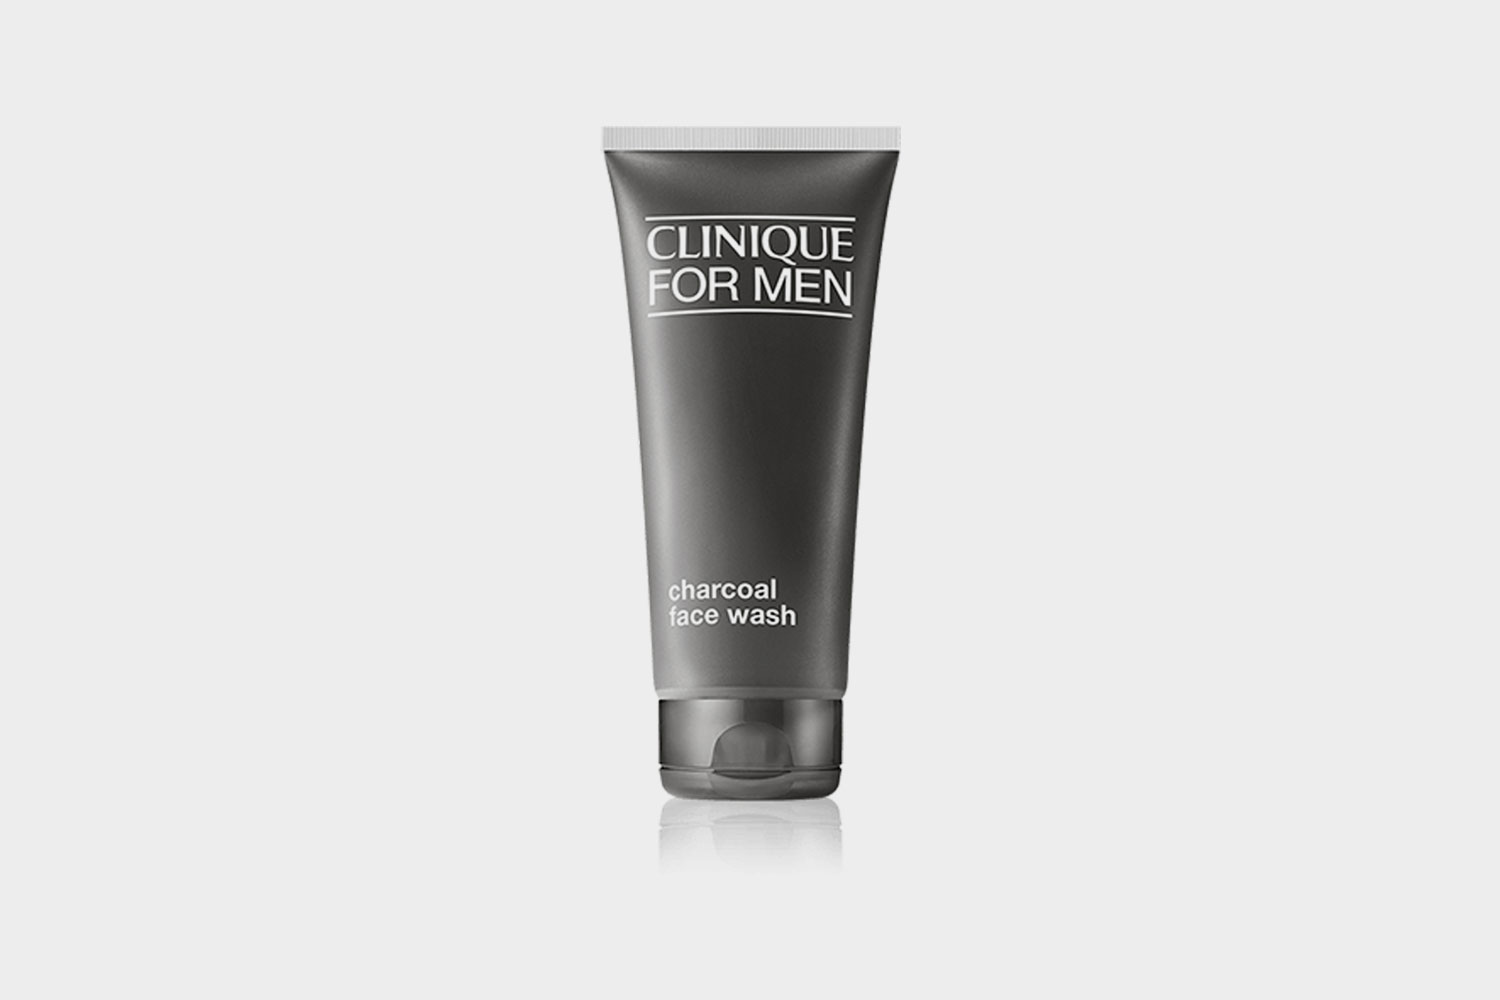 clinique charcoal wash product image